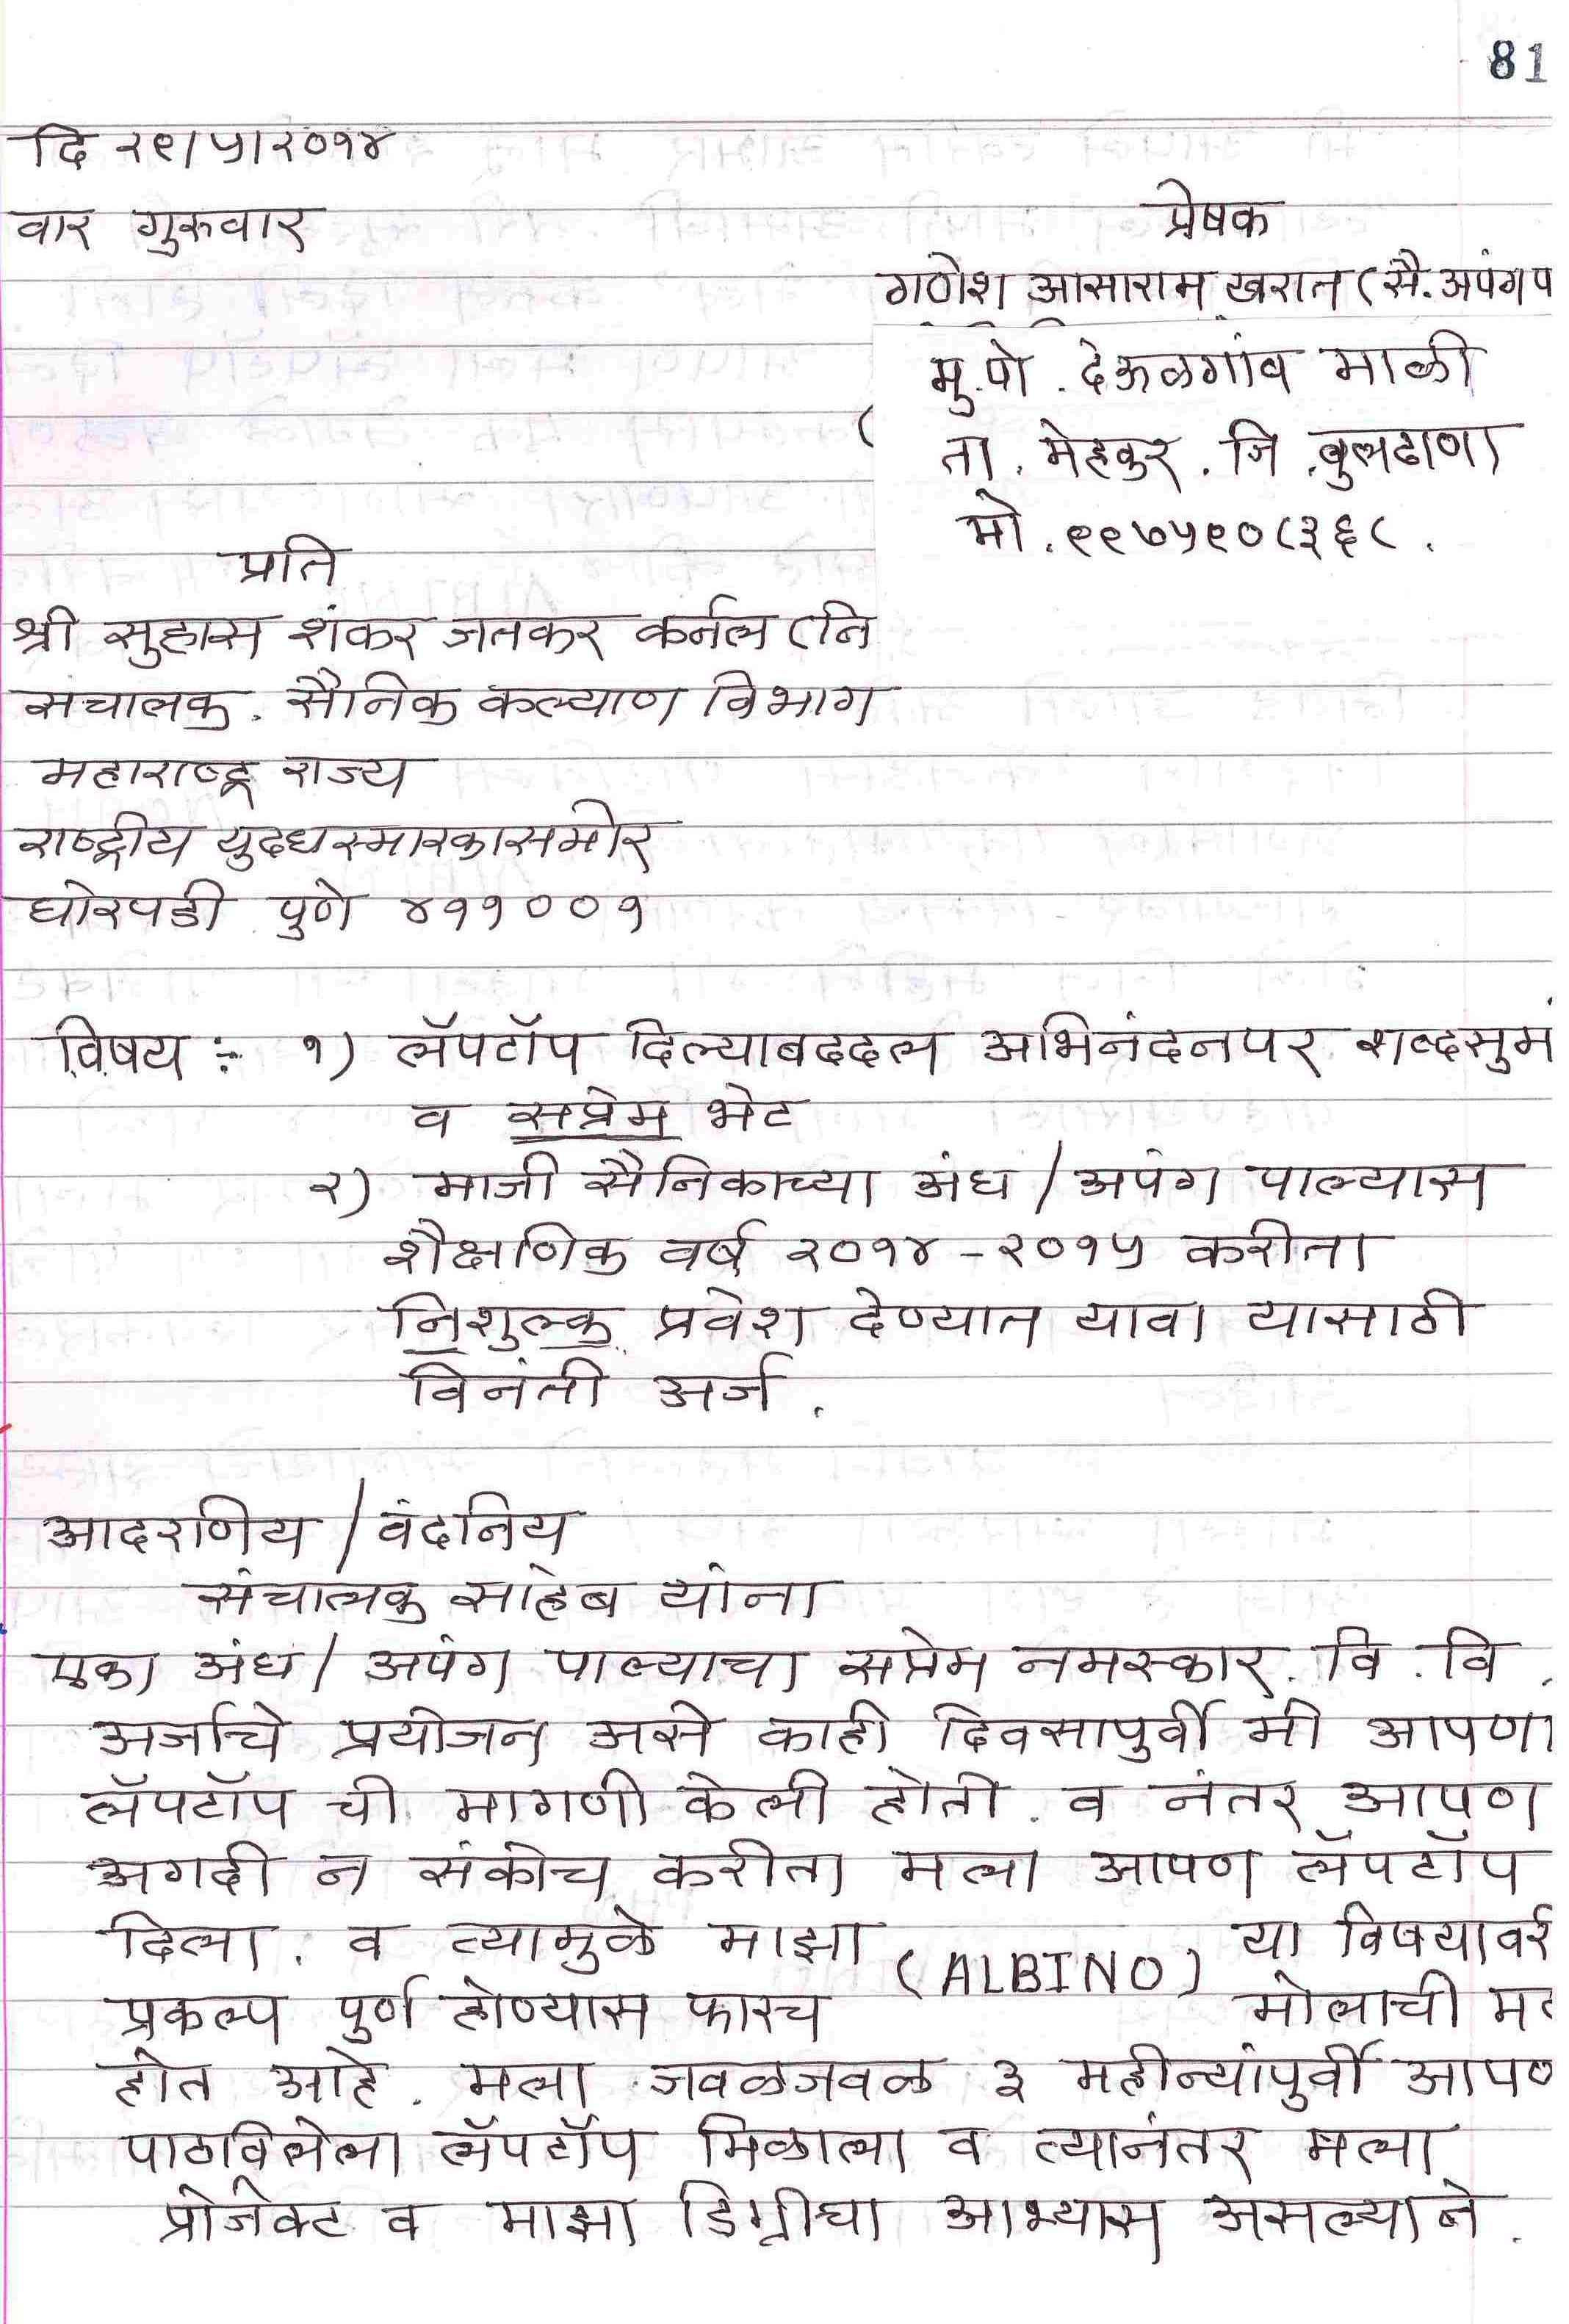 06248acfde0aac90223274496b110f06 Application Format For Bank Job In Marathi on